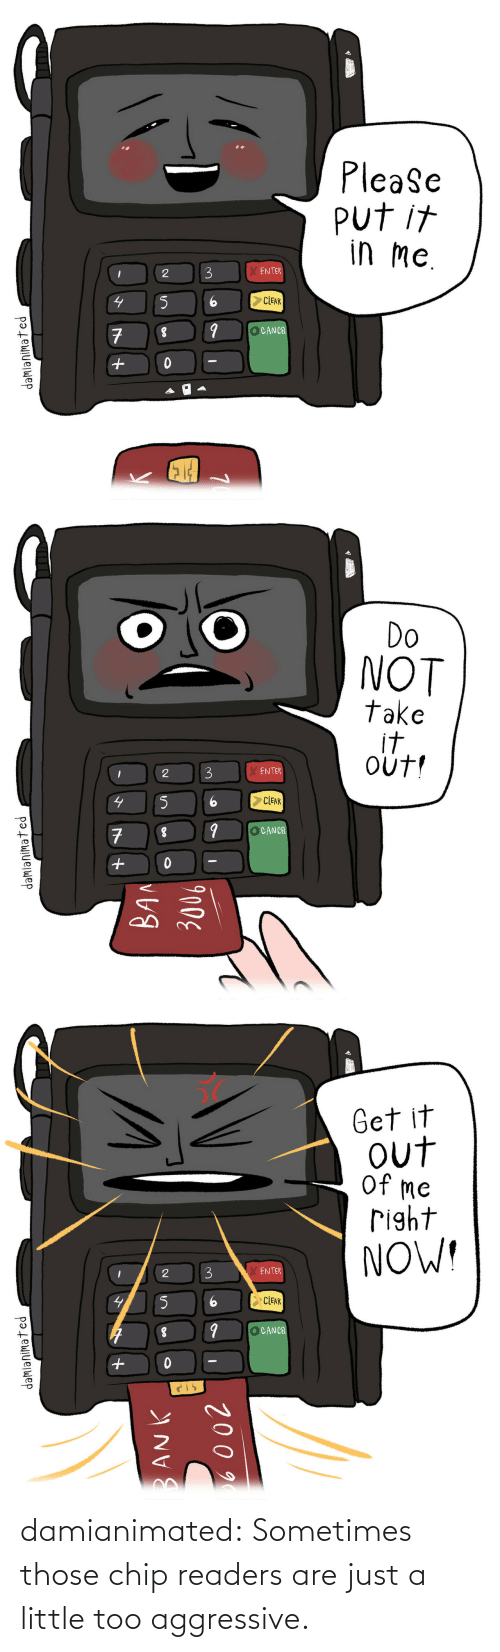 just: damianimated: Sometimes those chip readers are just a little too aggressive.